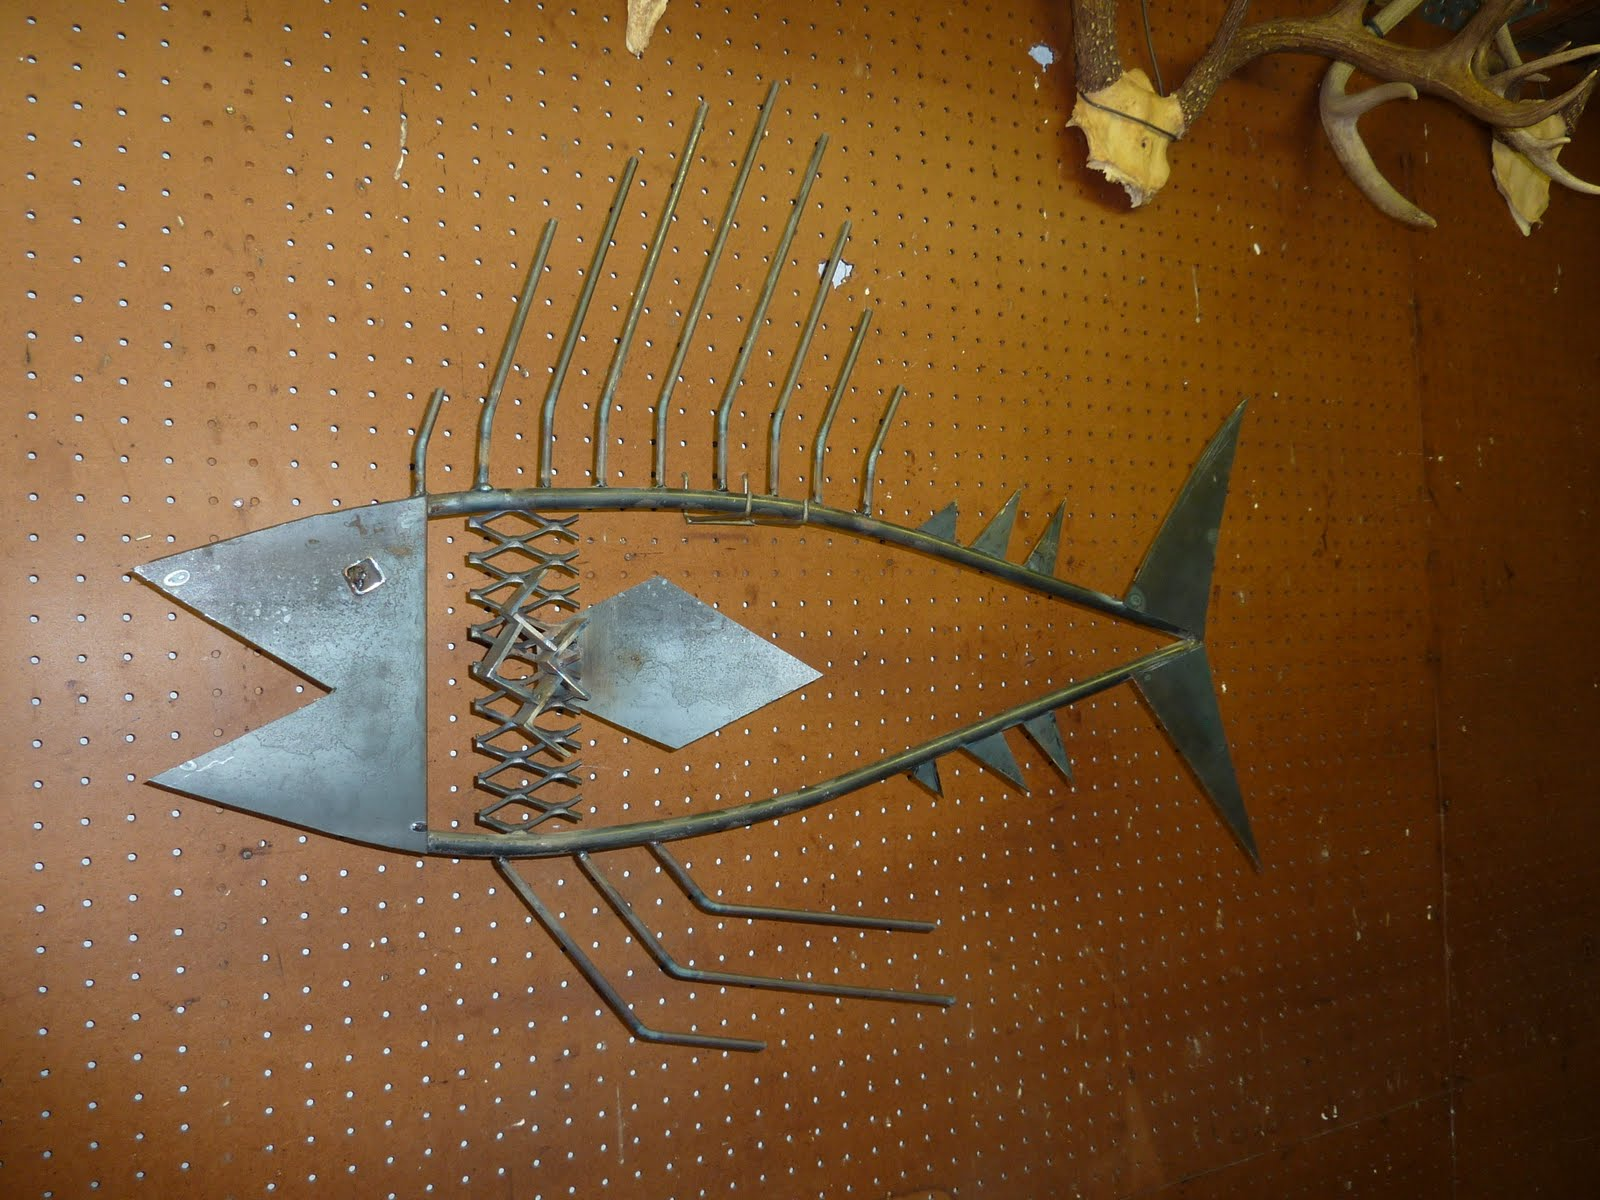 Jim aderhold 39 s welding and metalworking hobby fun stuff for Cool things to weld